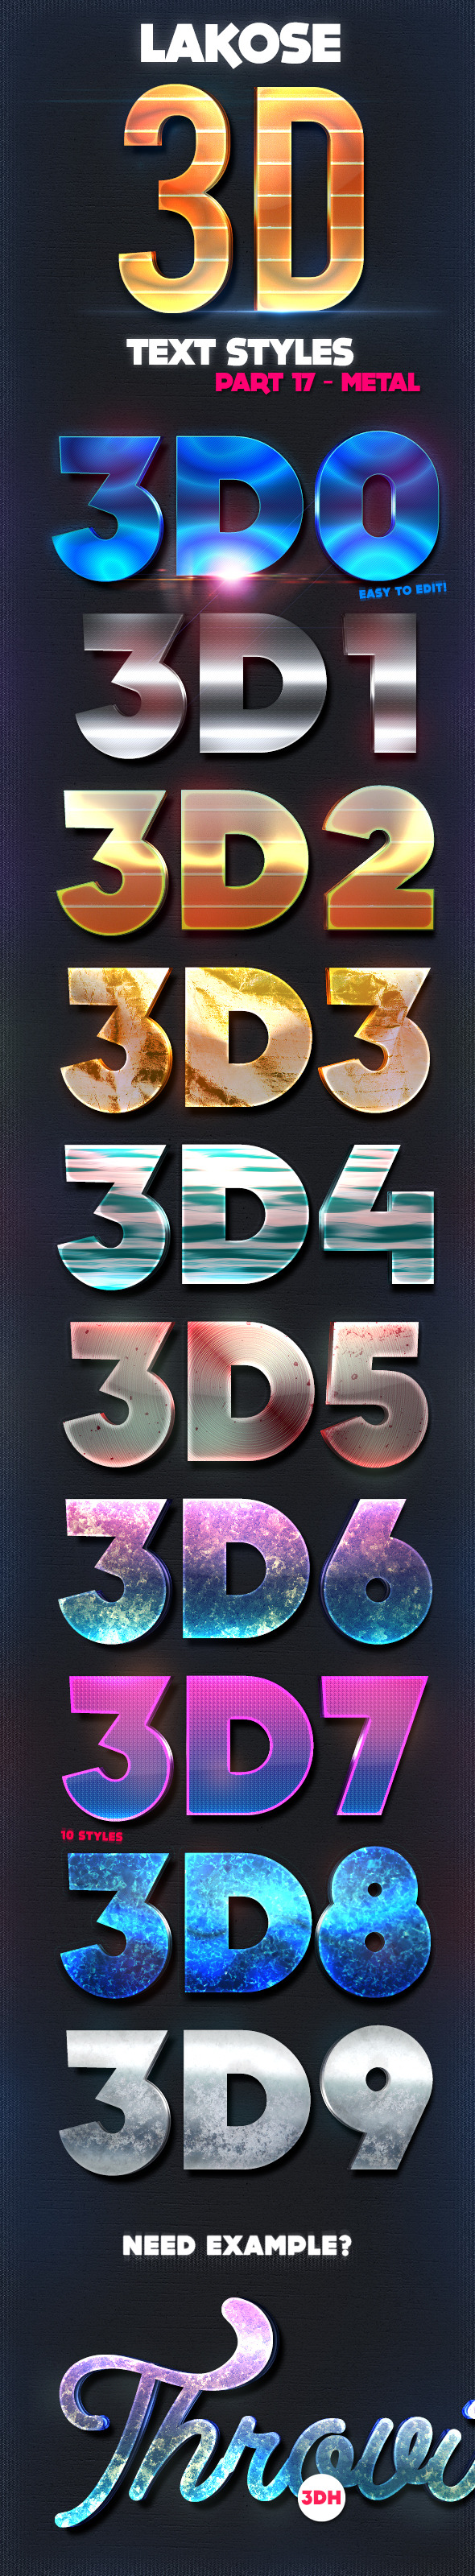 GraphicRiver Lakose 3D Text Styles Part 17 9819613